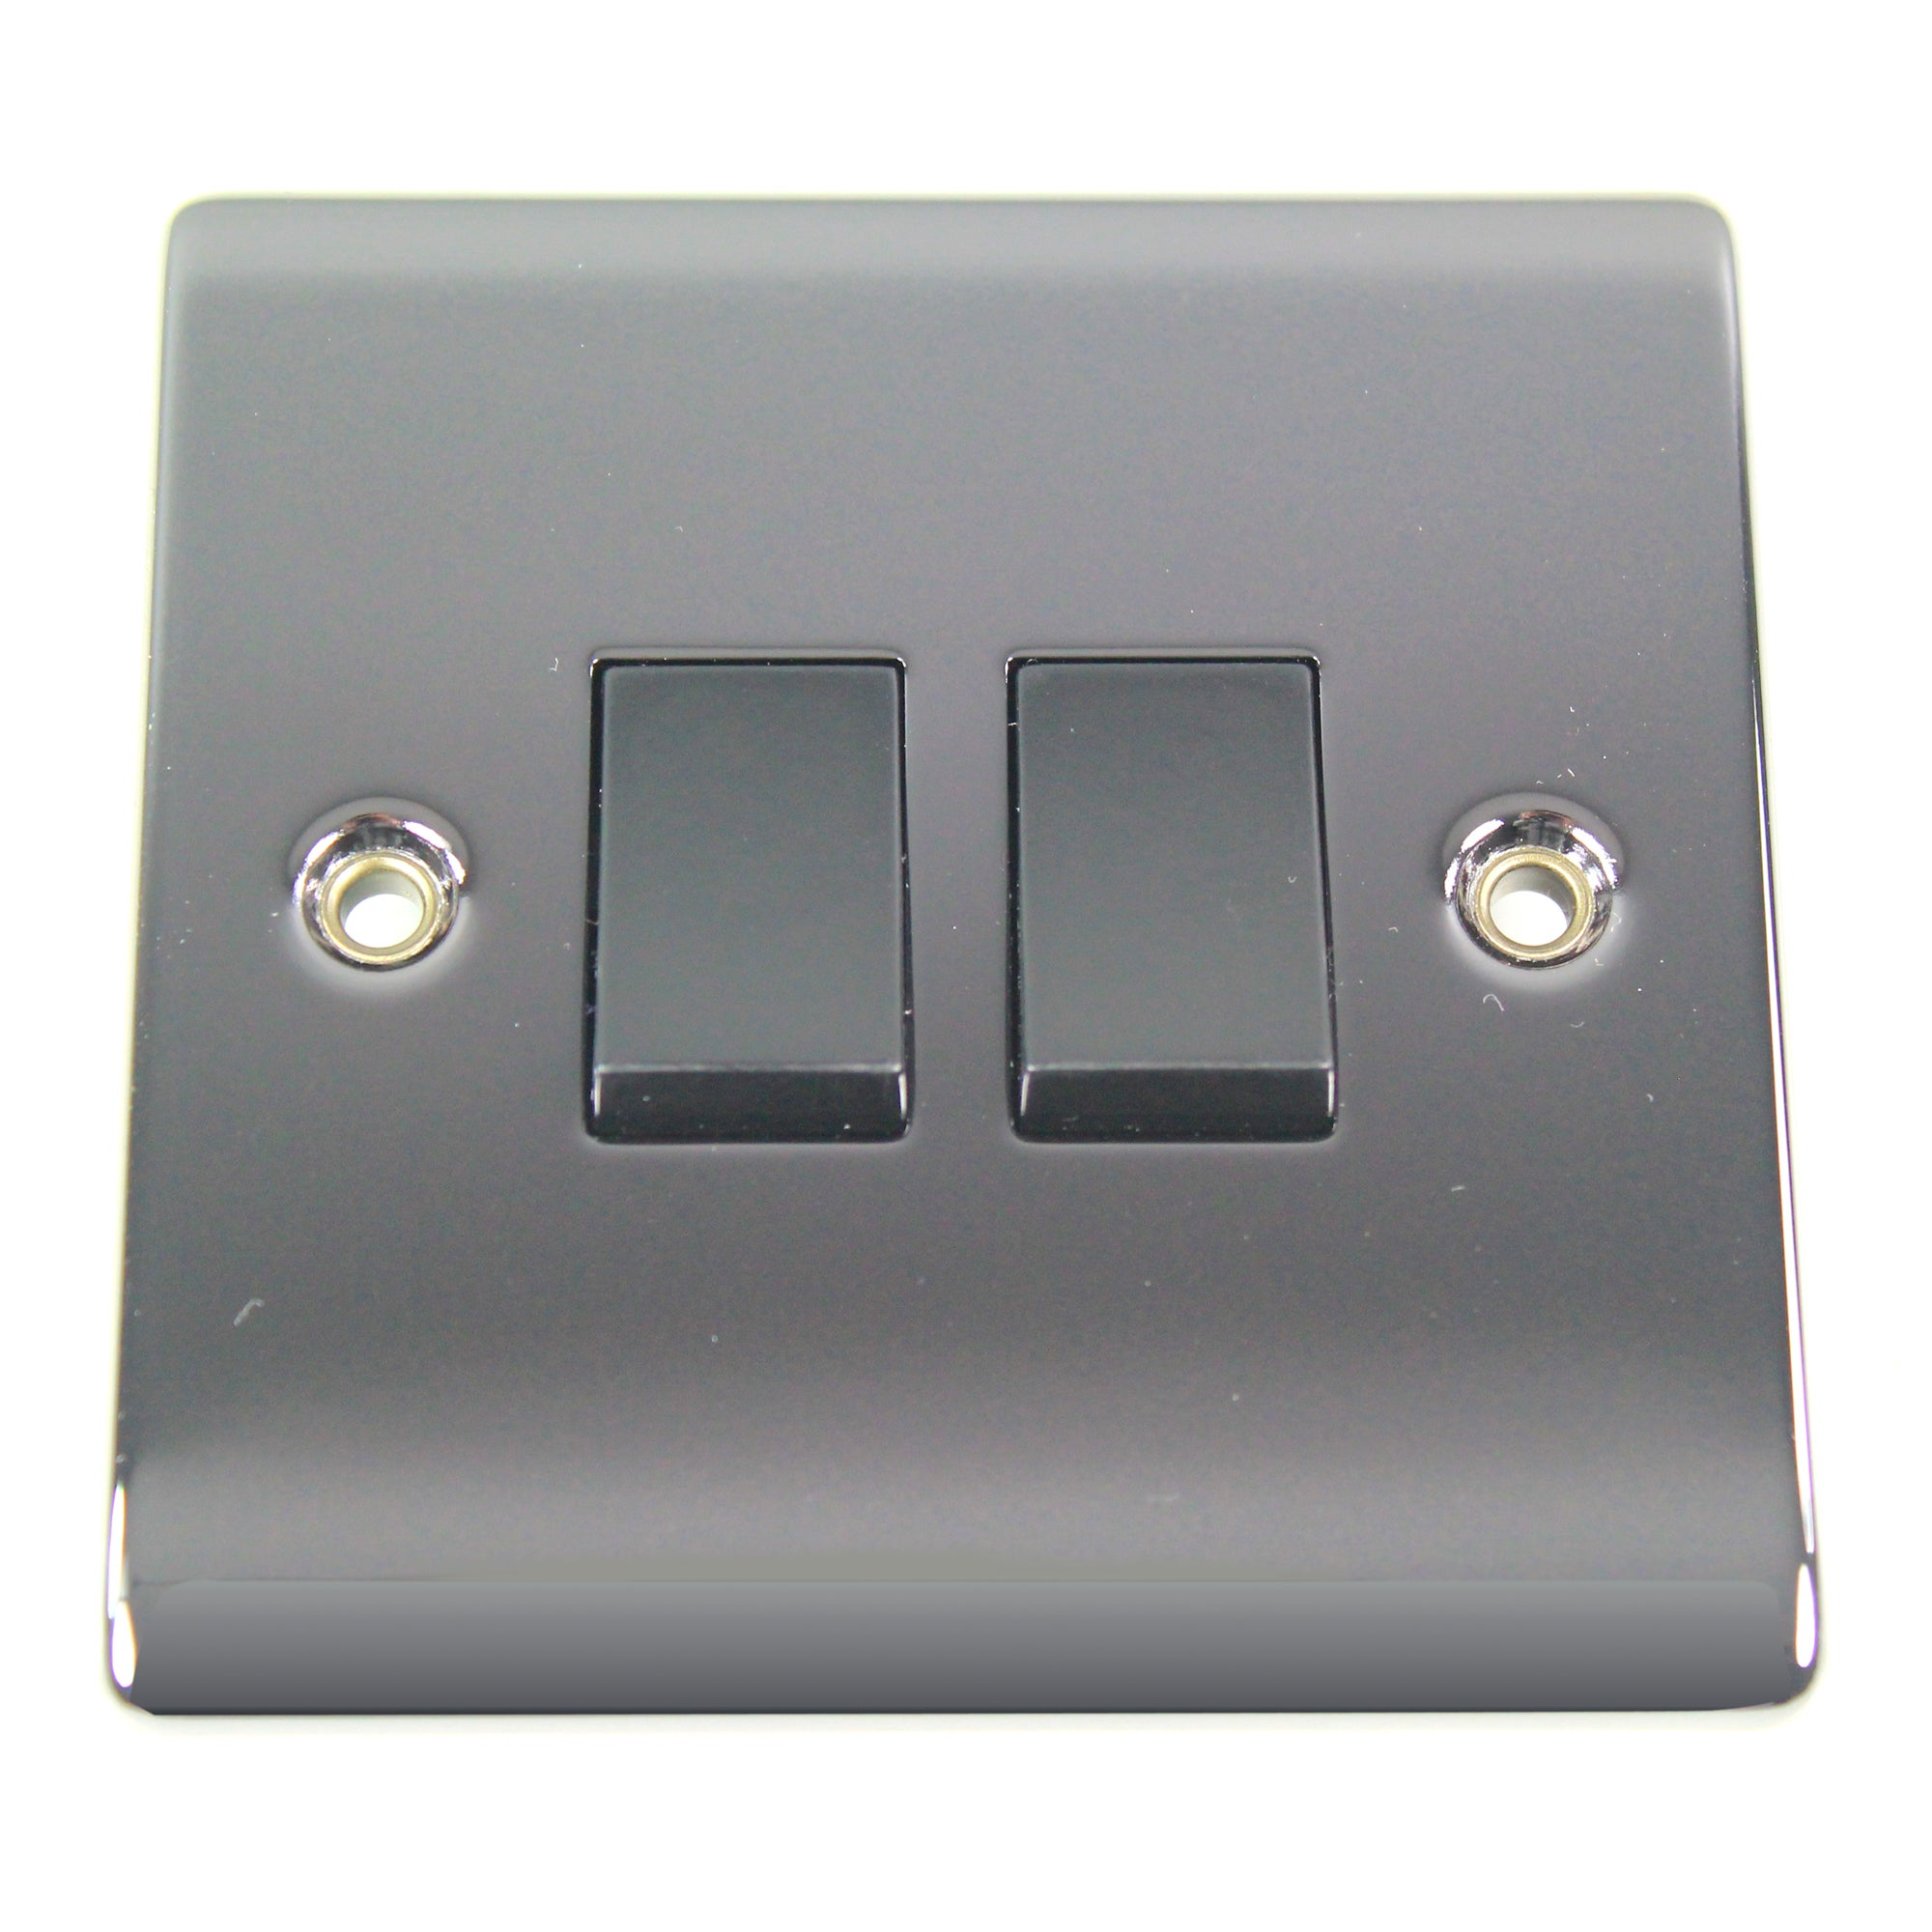 2 Gang 2 Way Black Nickel Light Switch